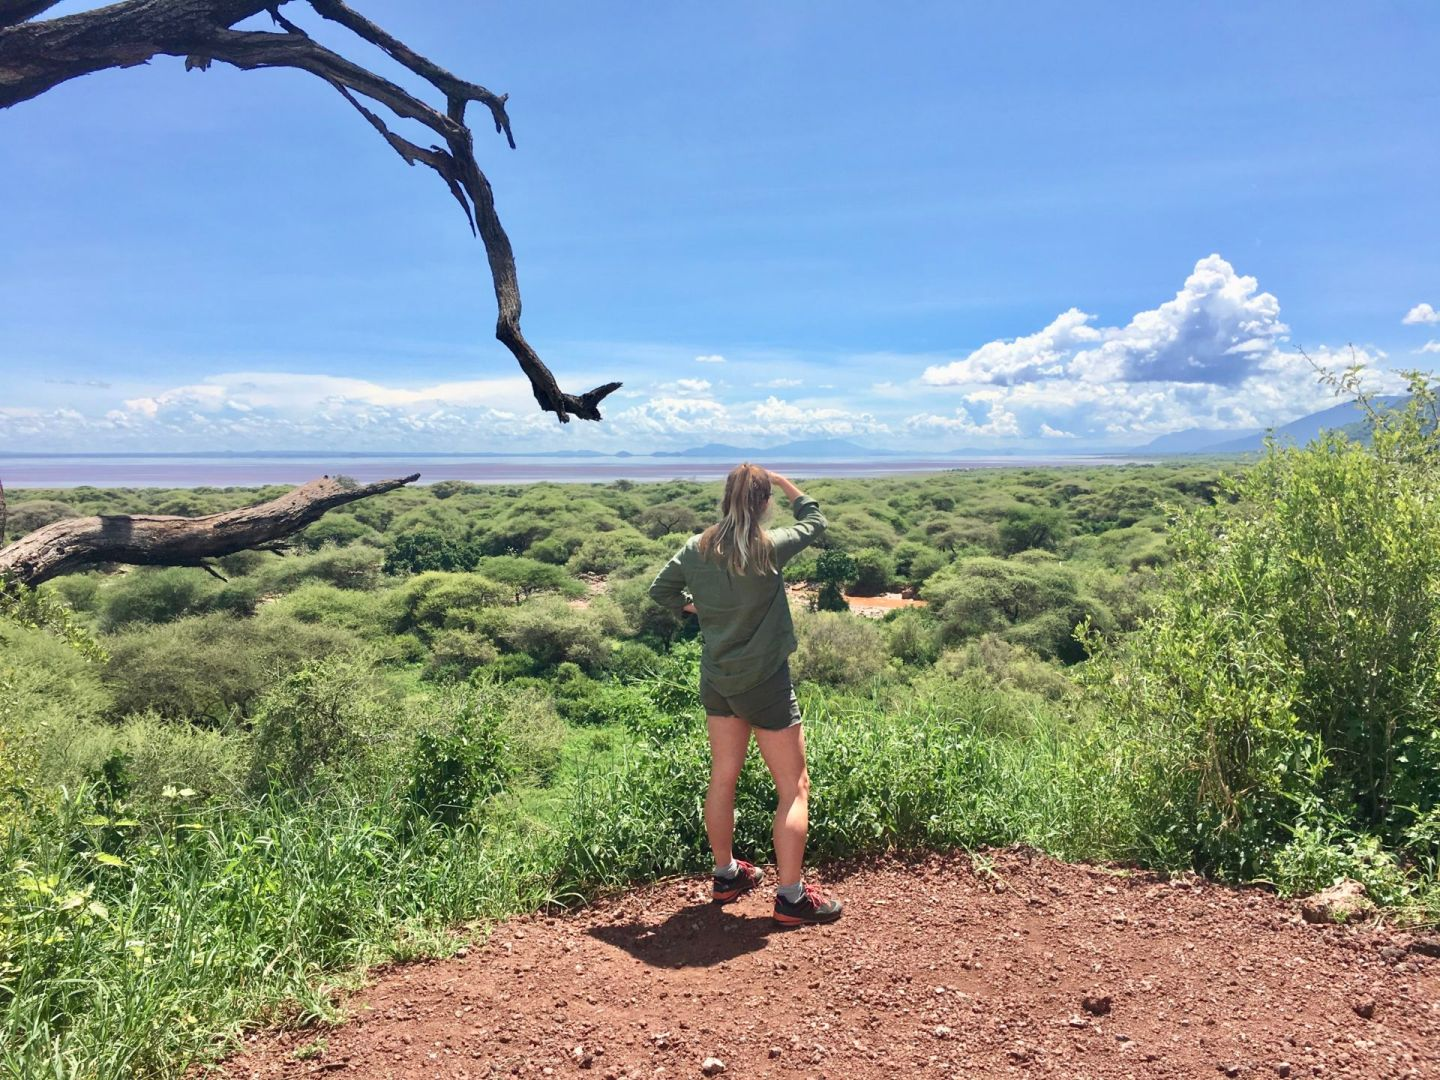 Travel Diary: Looking For Tree-Climbing Lions in Lake Manyara National Park